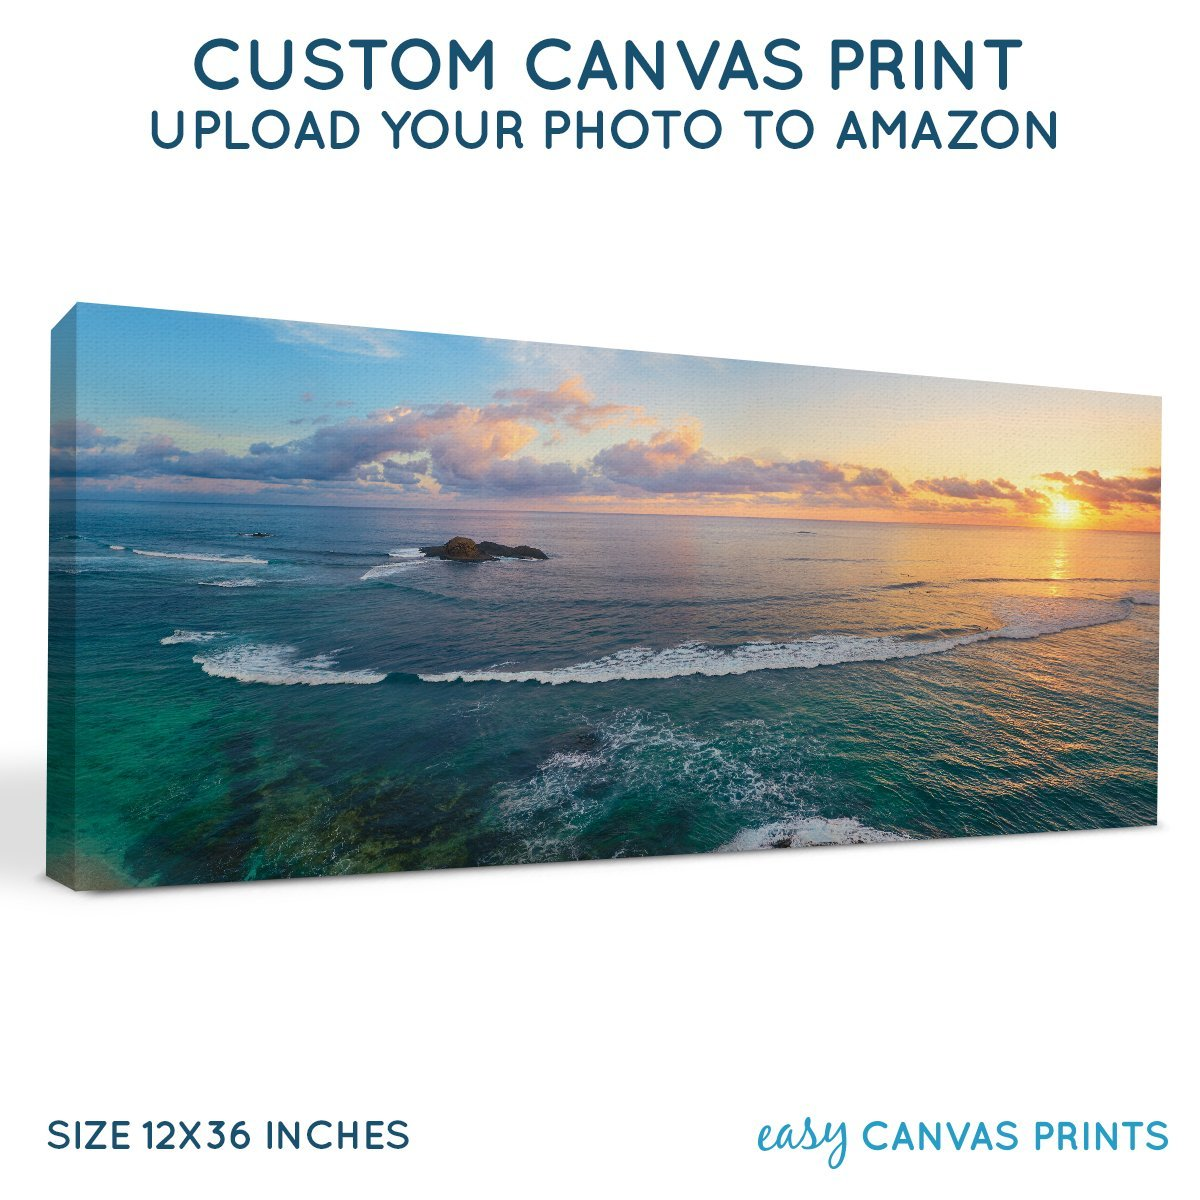 Amazon.com: Your Panoramic Photo on Custom Personalized Canvas ...